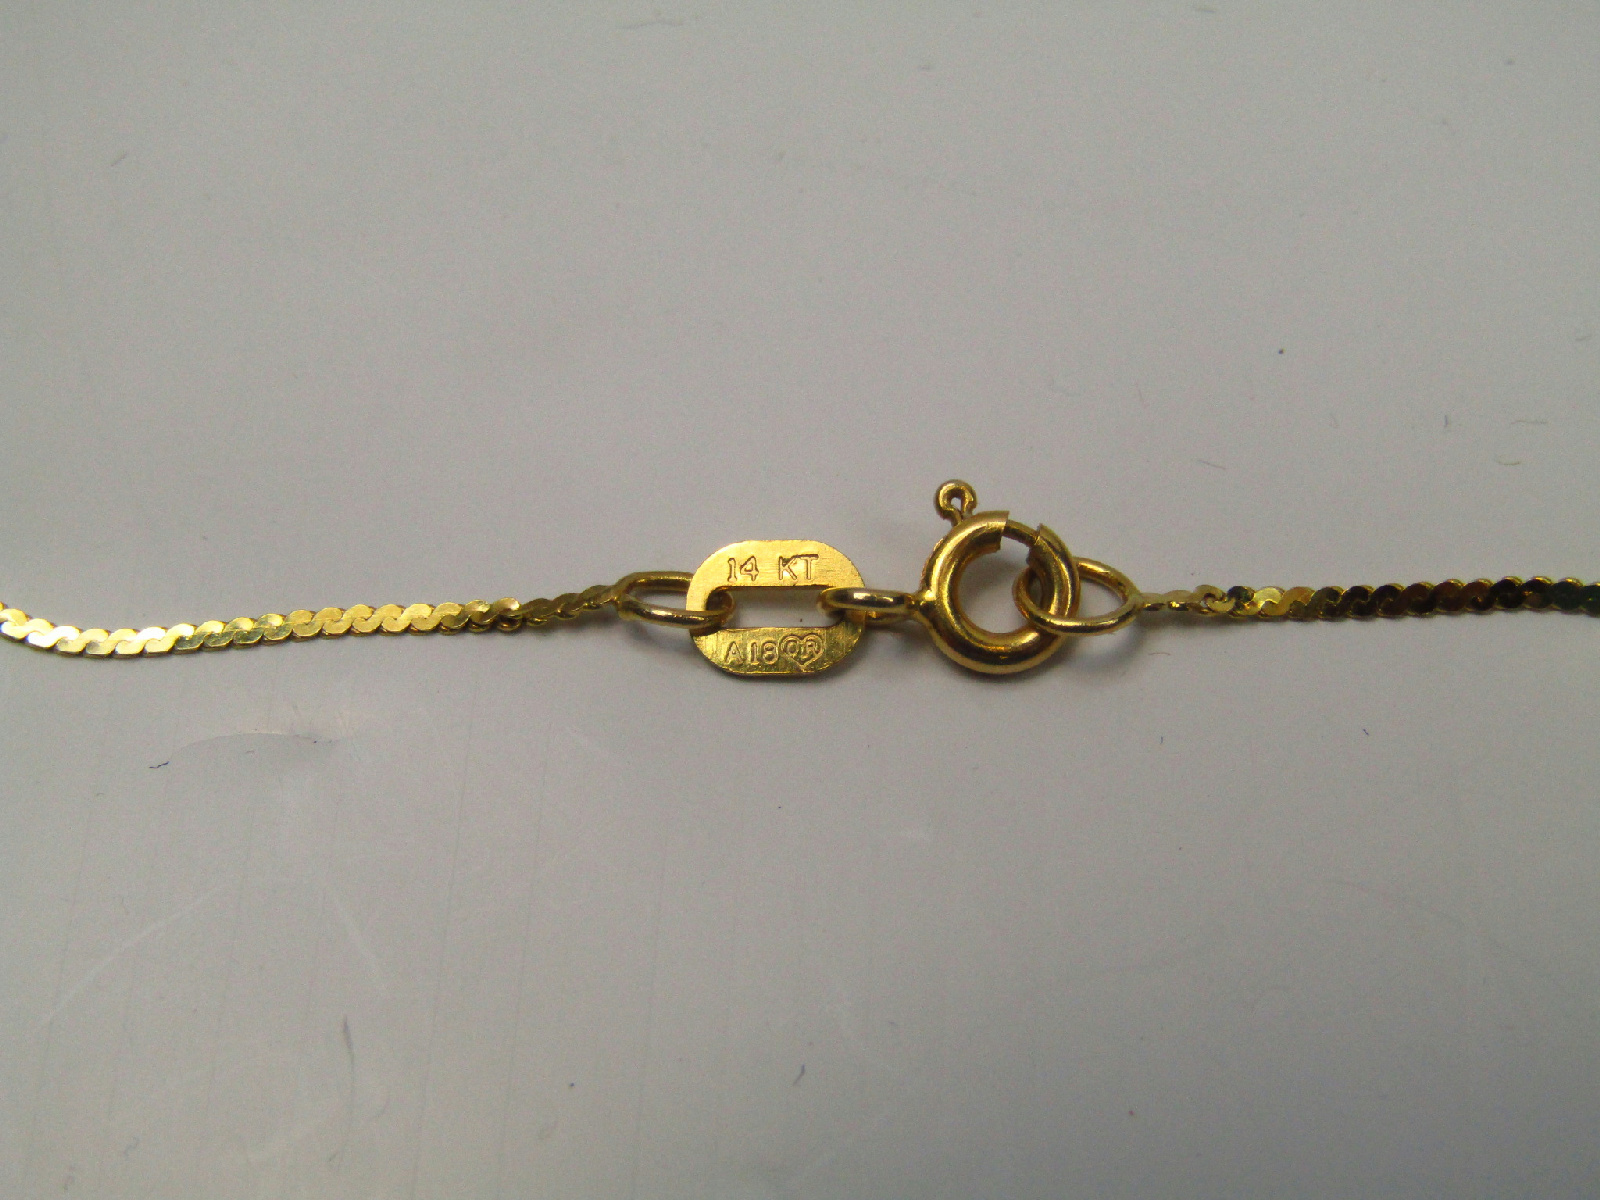 14k Yellow Gold Jewelry Flat Serpentine Chain Necklace 18 ...  14k Yellow Gold...